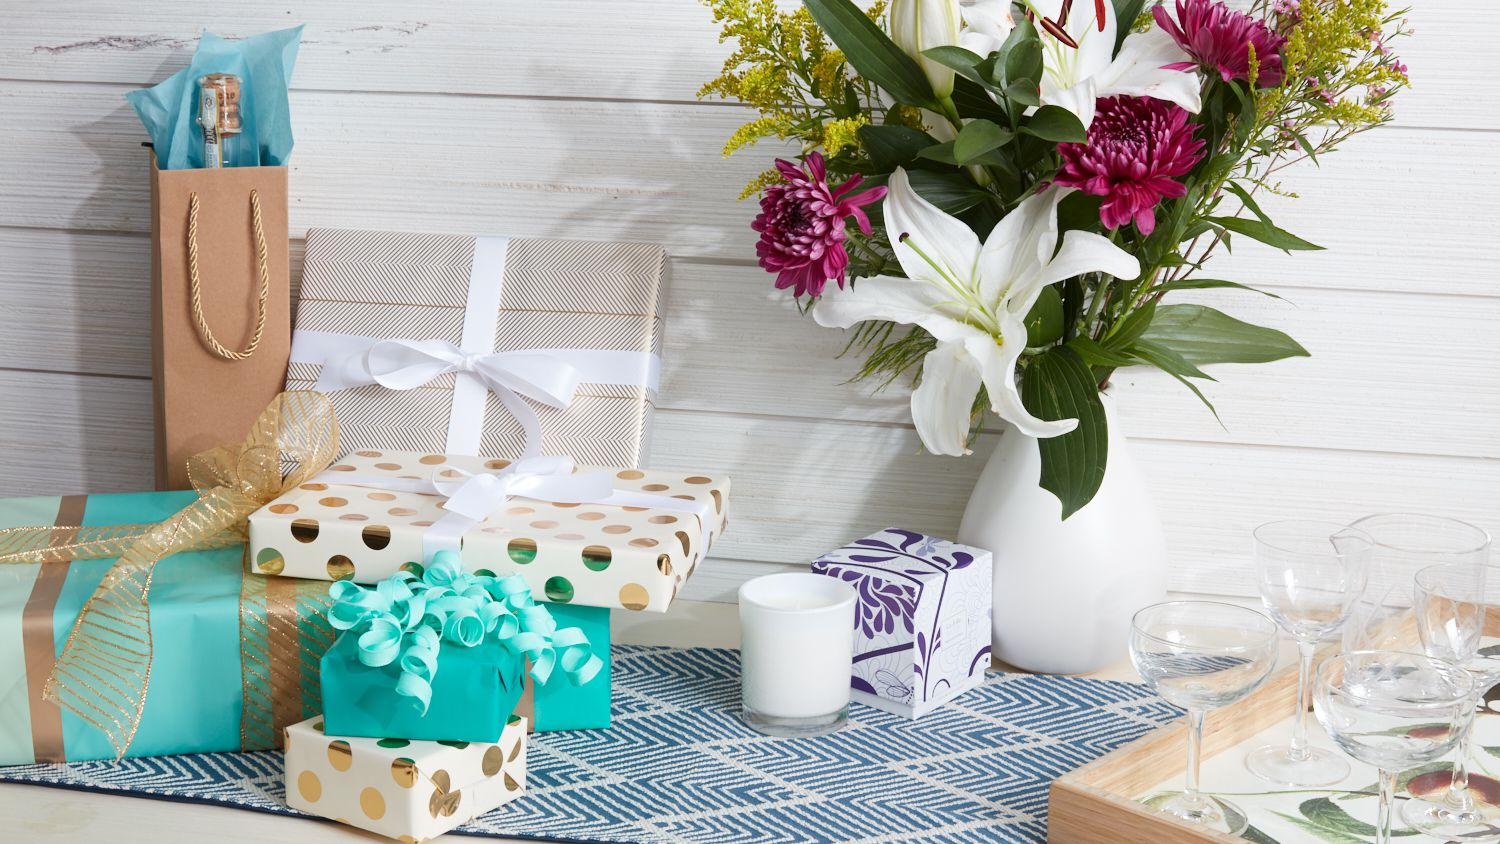 How To Give A Proper Gift To A Host Or Hostess